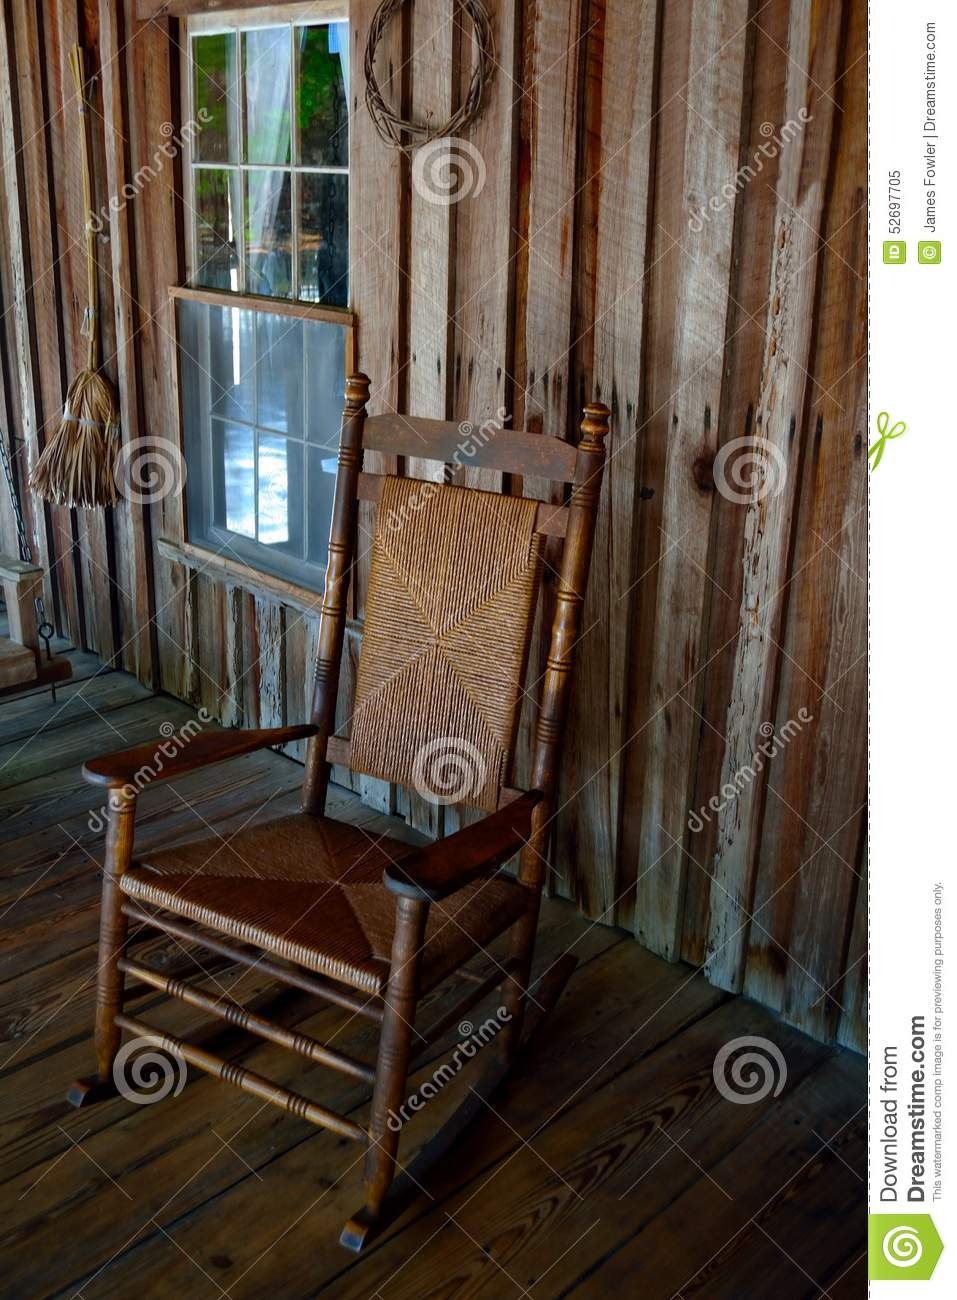 Surprising Rocking Chair On An Old Time Front Porch Stock Image Pabps2019 Chair Design Images Pabps2019Com